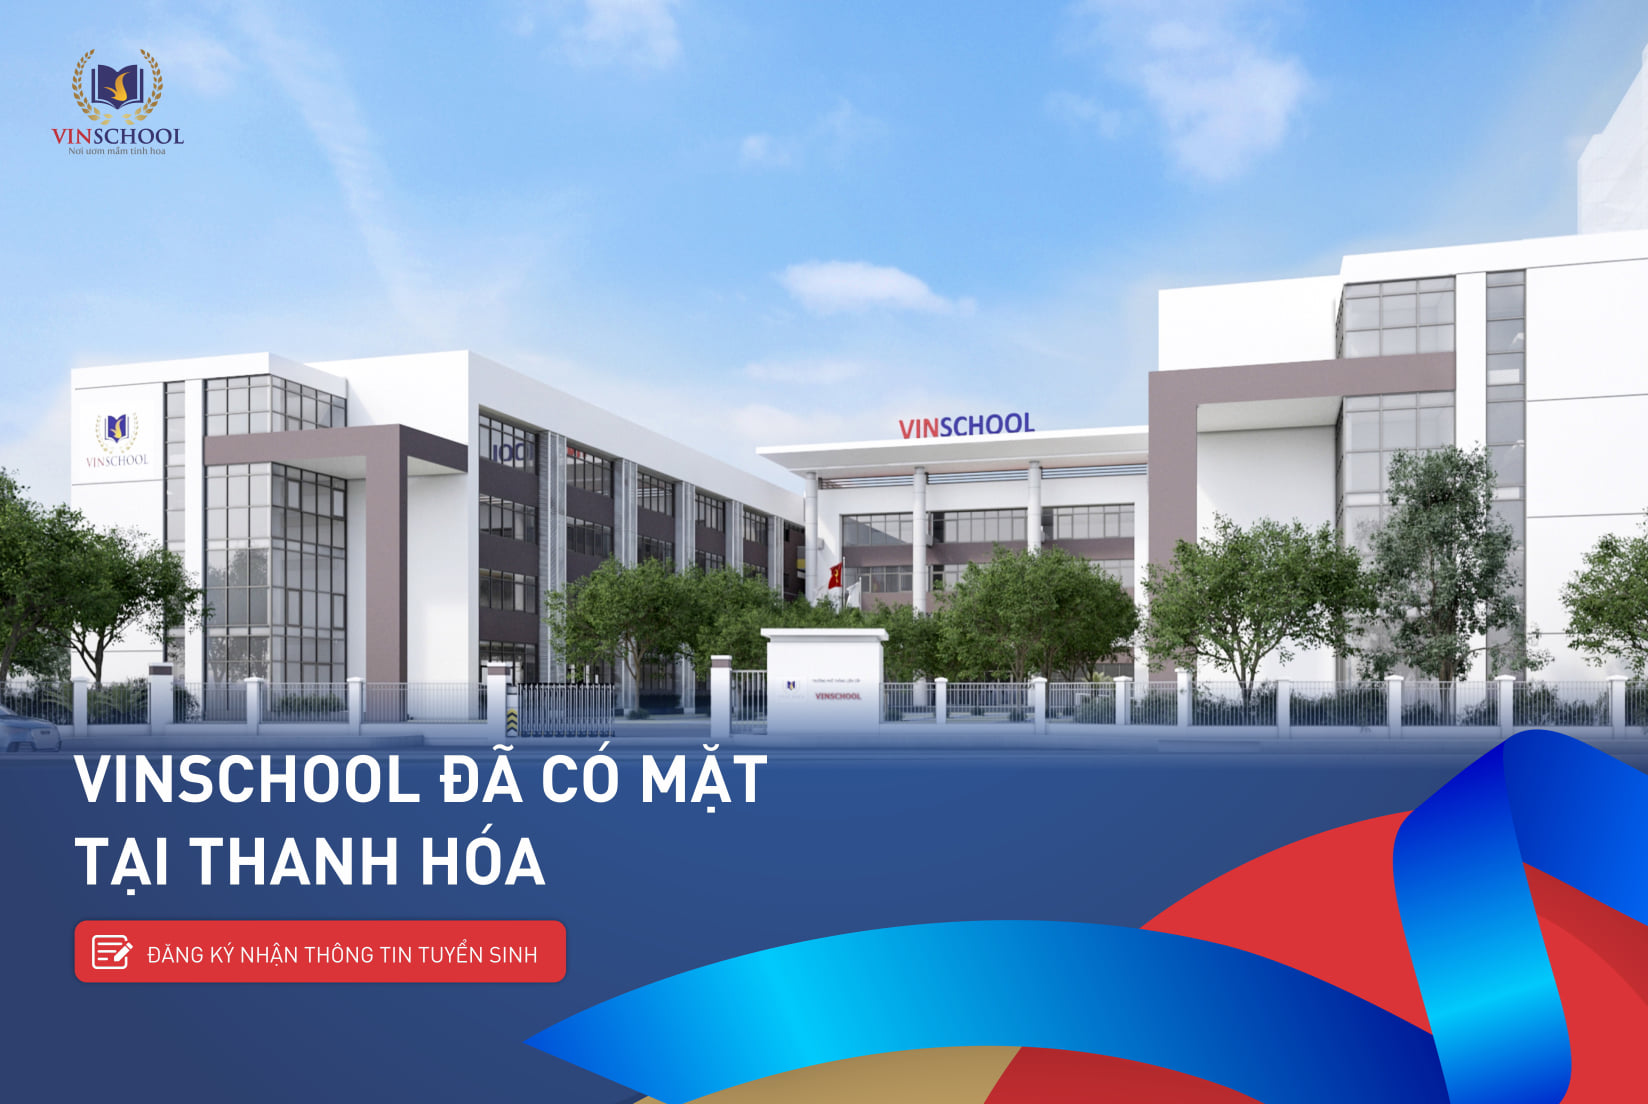 Vinschool's expansion into Thanh Hoa Province